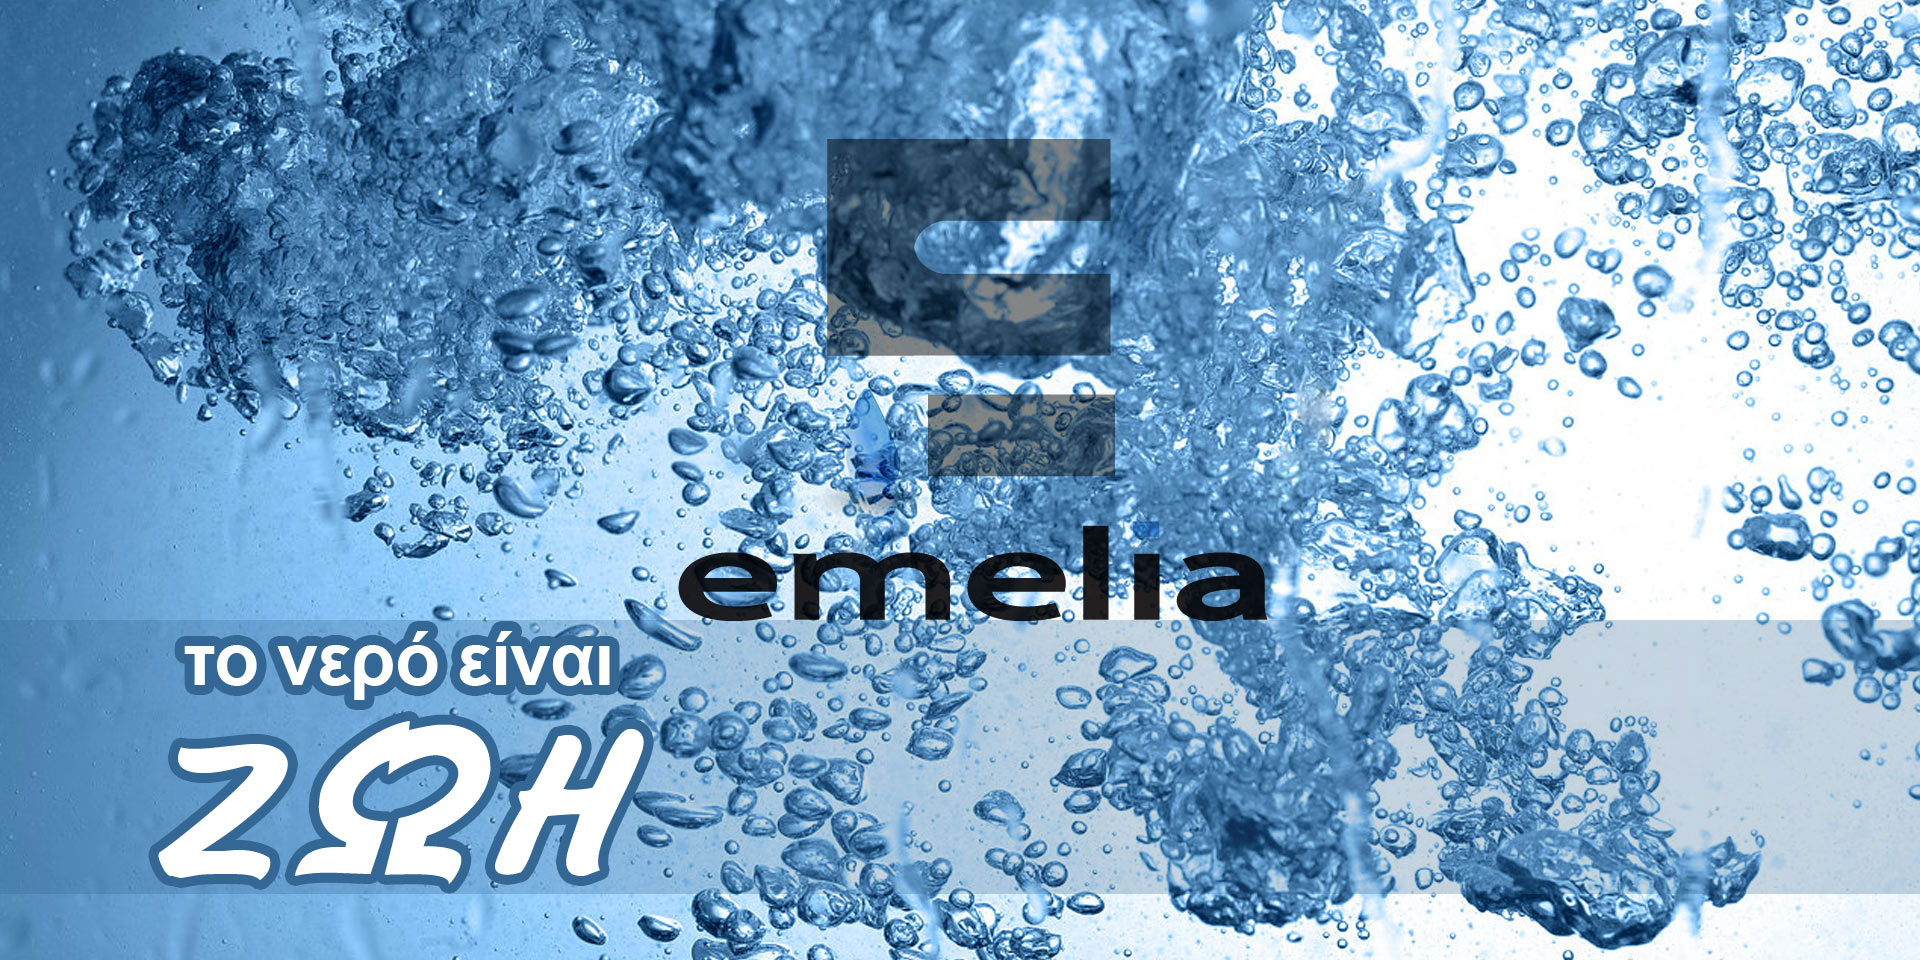 emelia-water-nero-einai-zoi-with-logo